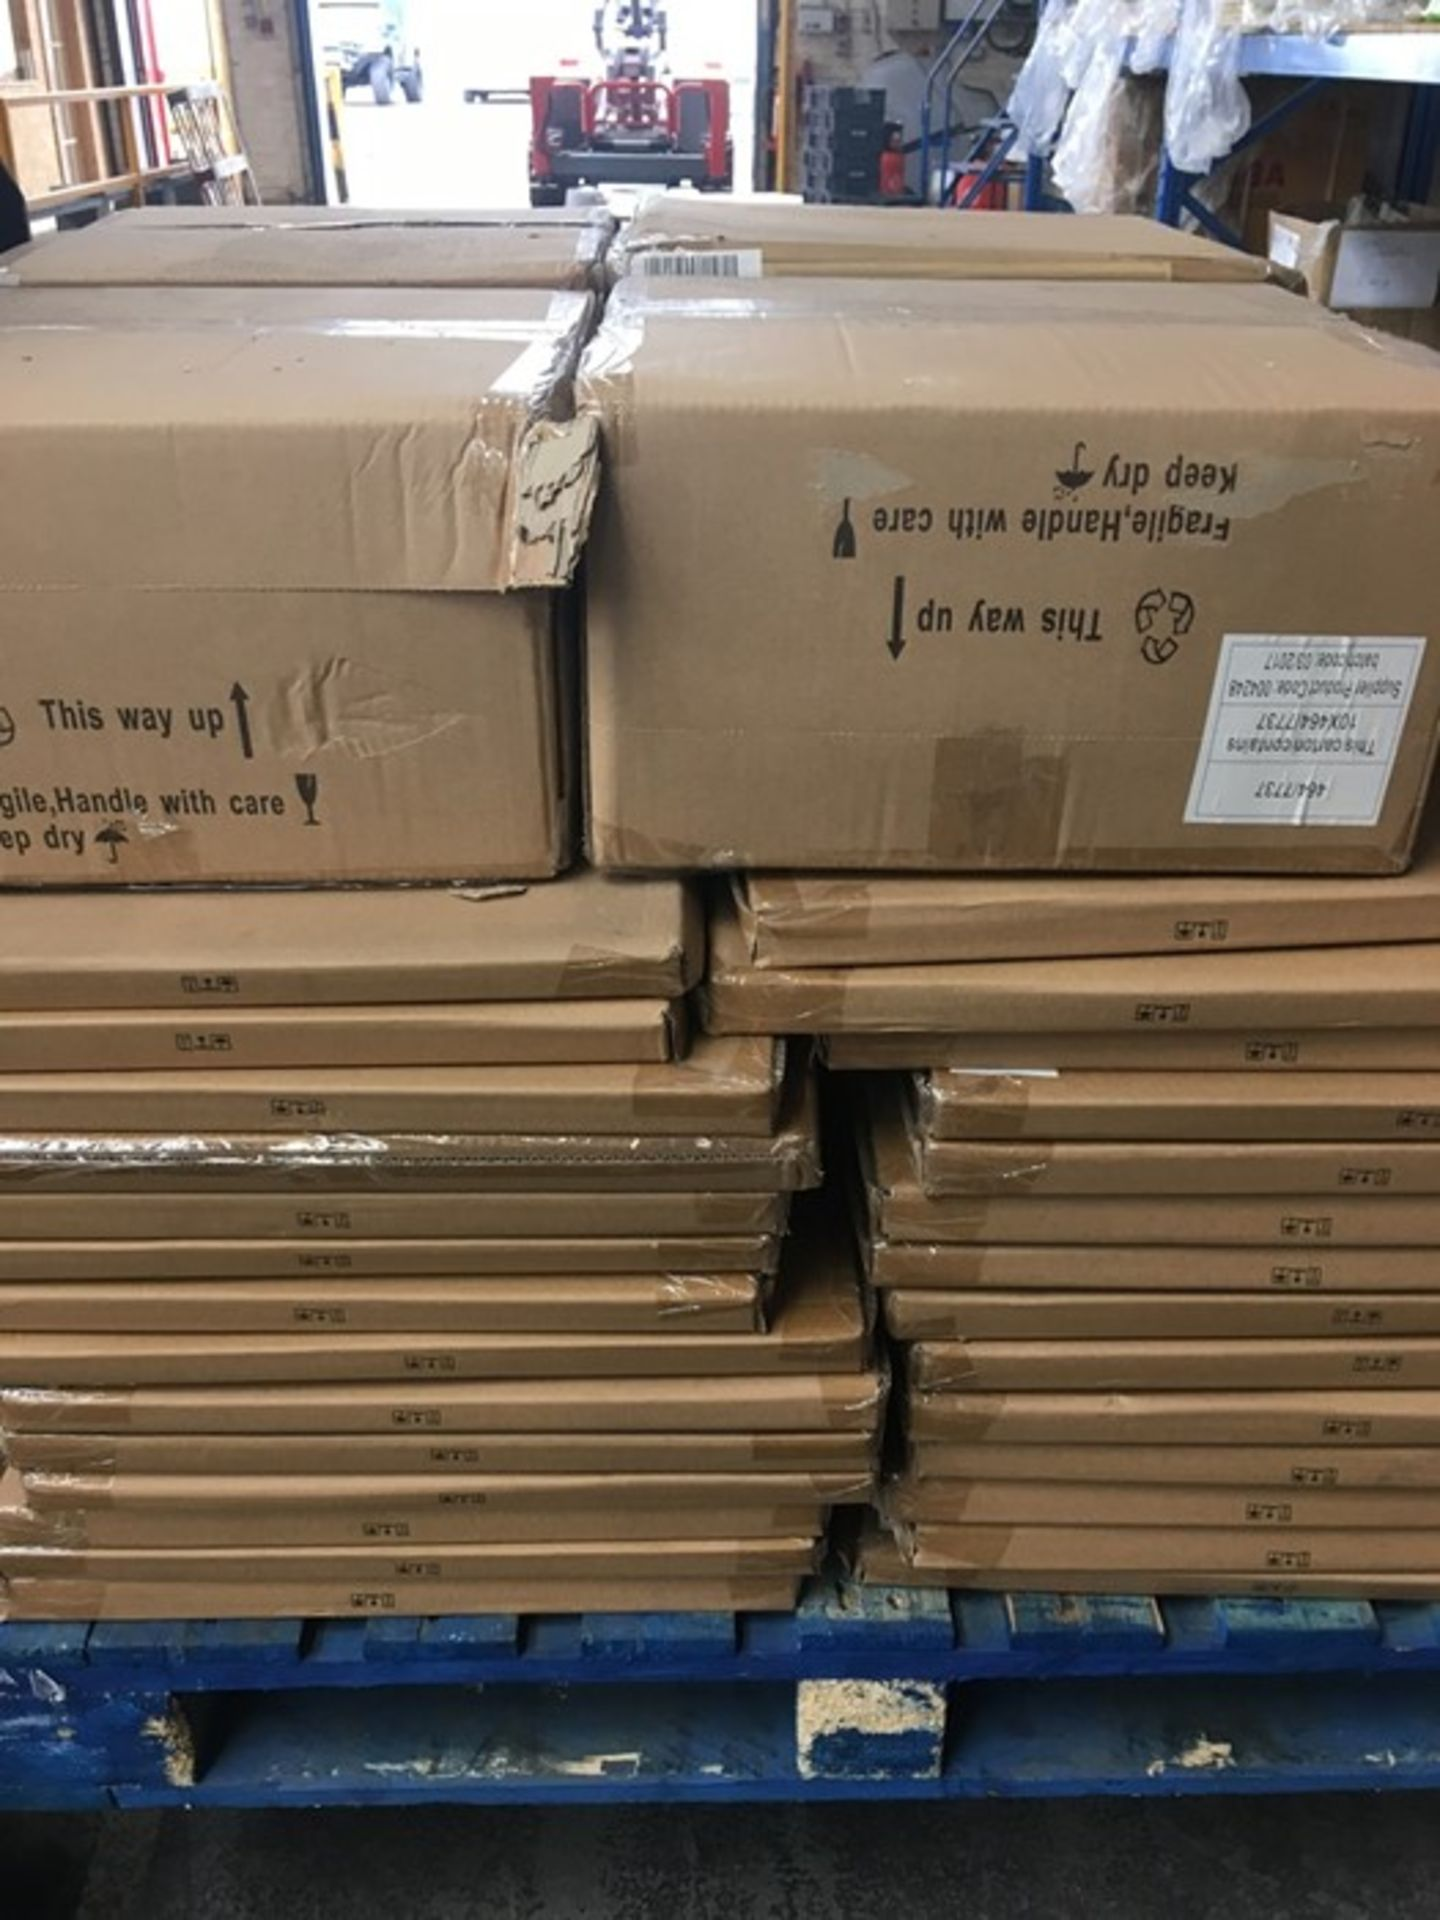 Lotto 9 - 1 LOT TO CONTAIN 56 HEDGEHOG CANVASES AND 40 SET OF 3 EXOTIC BUTTERFLY CANVASES (VIEWING HIGHLY